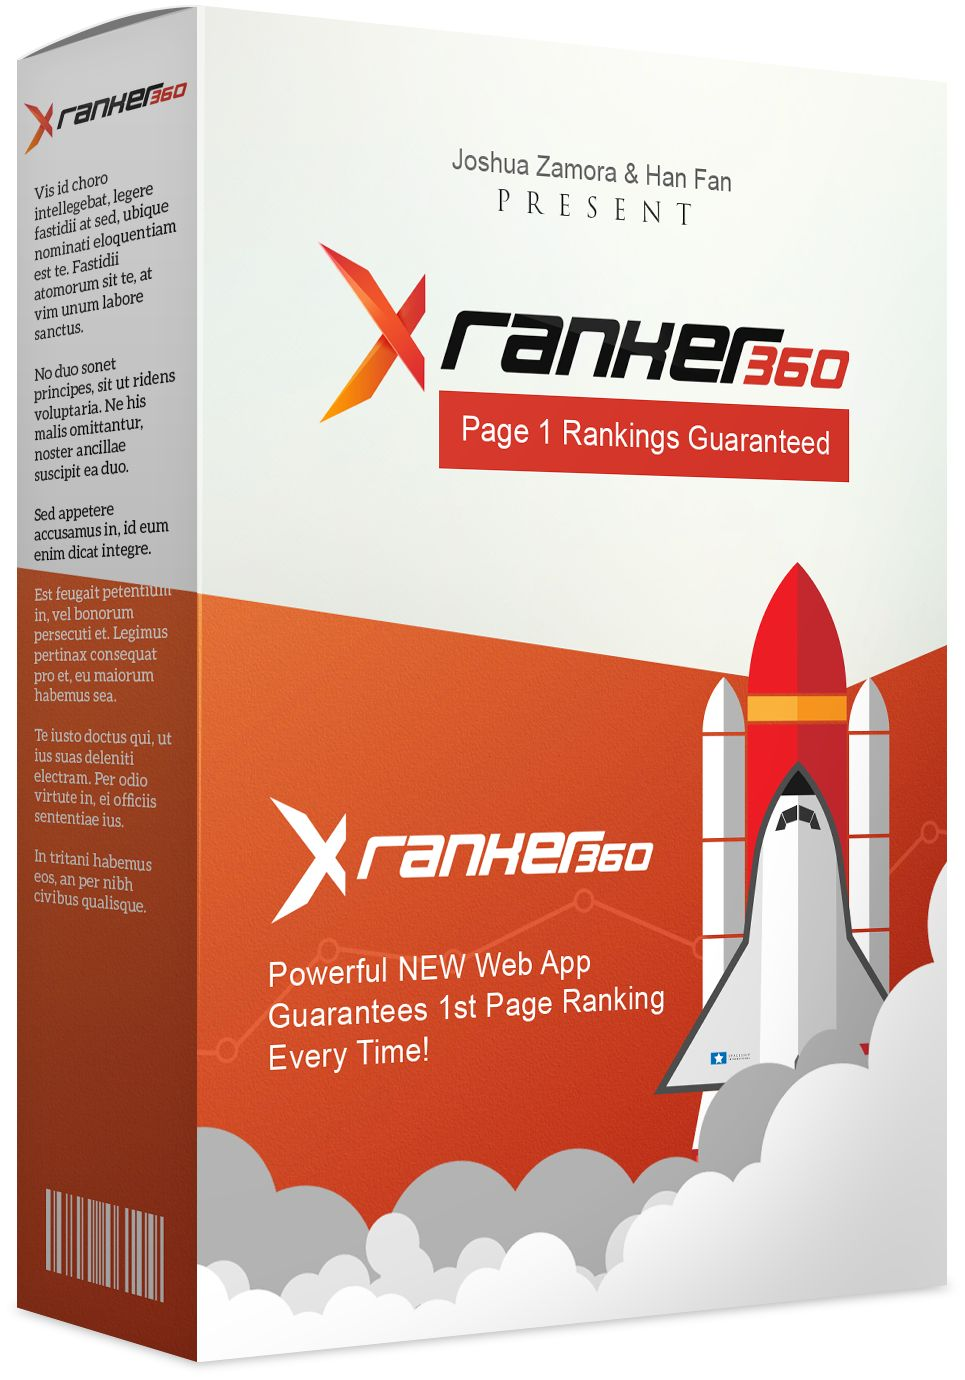 x-ranker-360-review-compressed